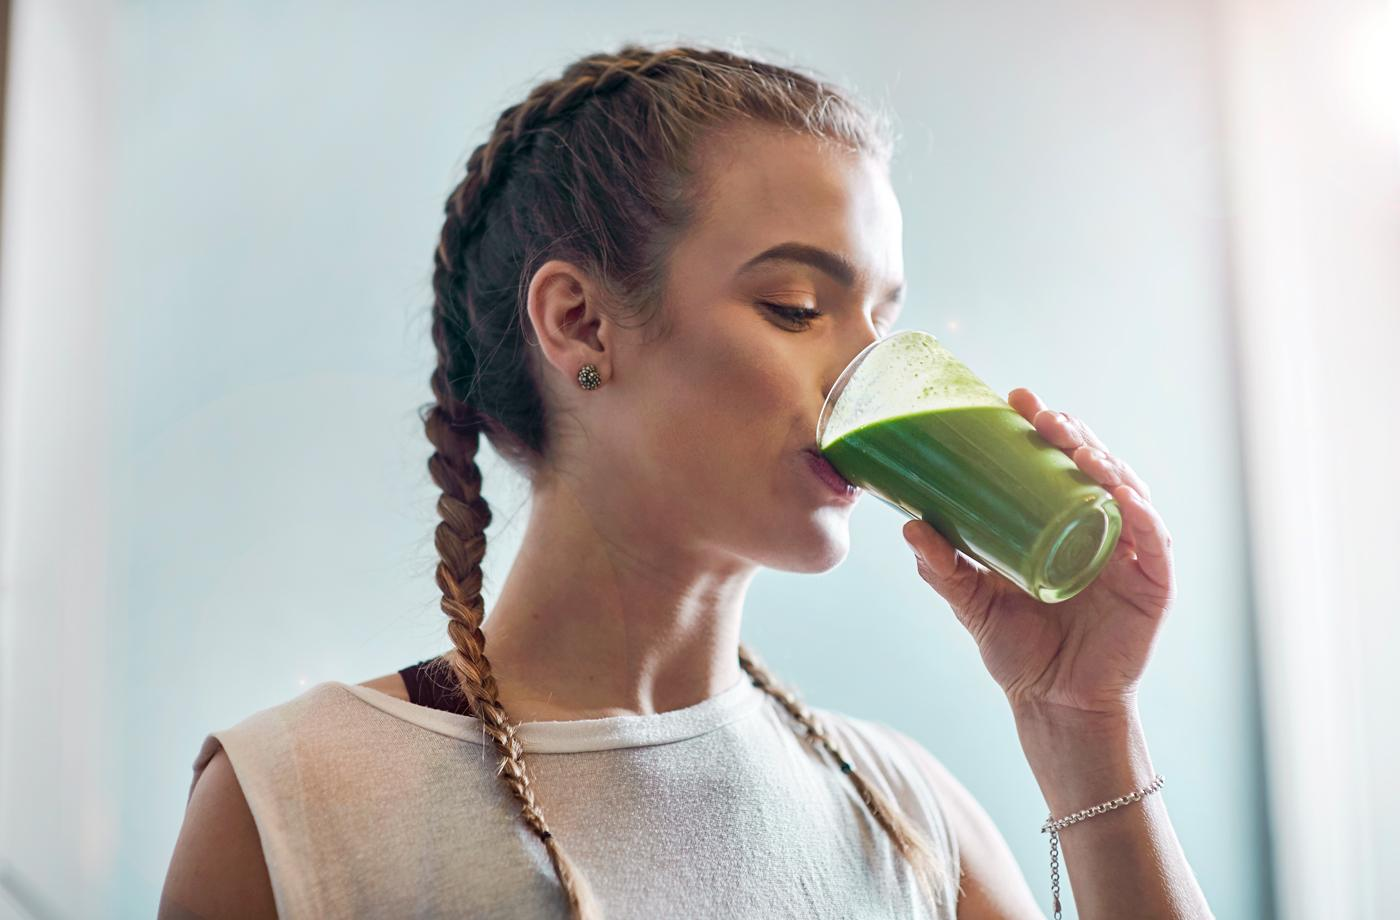 Boost your immune system with these expert-approved smoothie ingredients